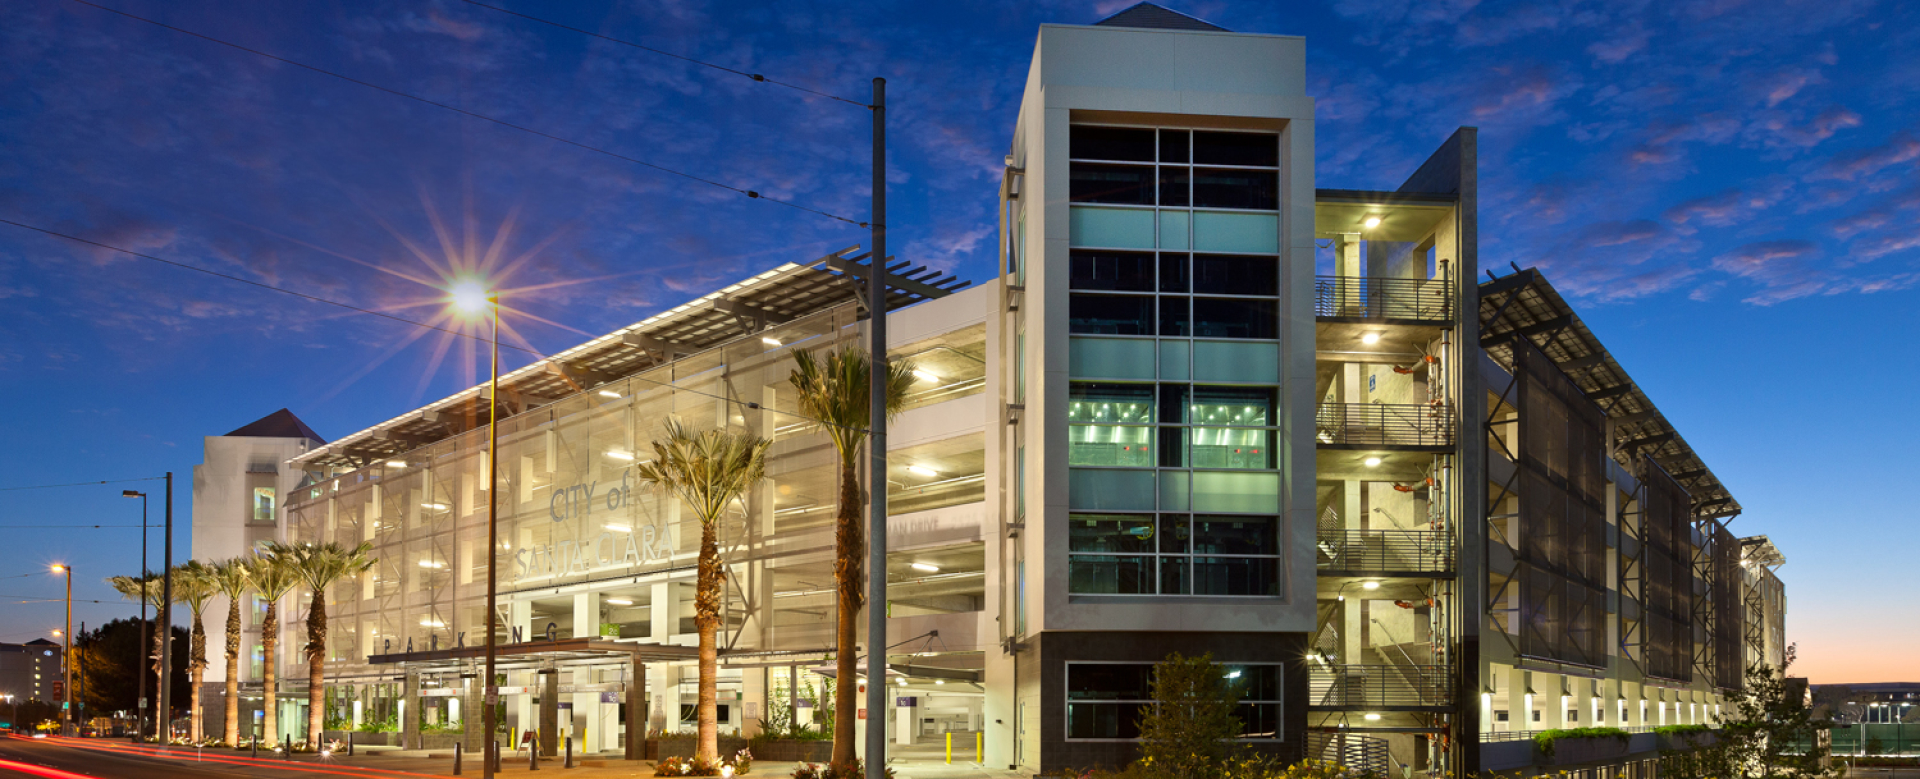 City of Santa Clara - Tasman Drive Parking Structure